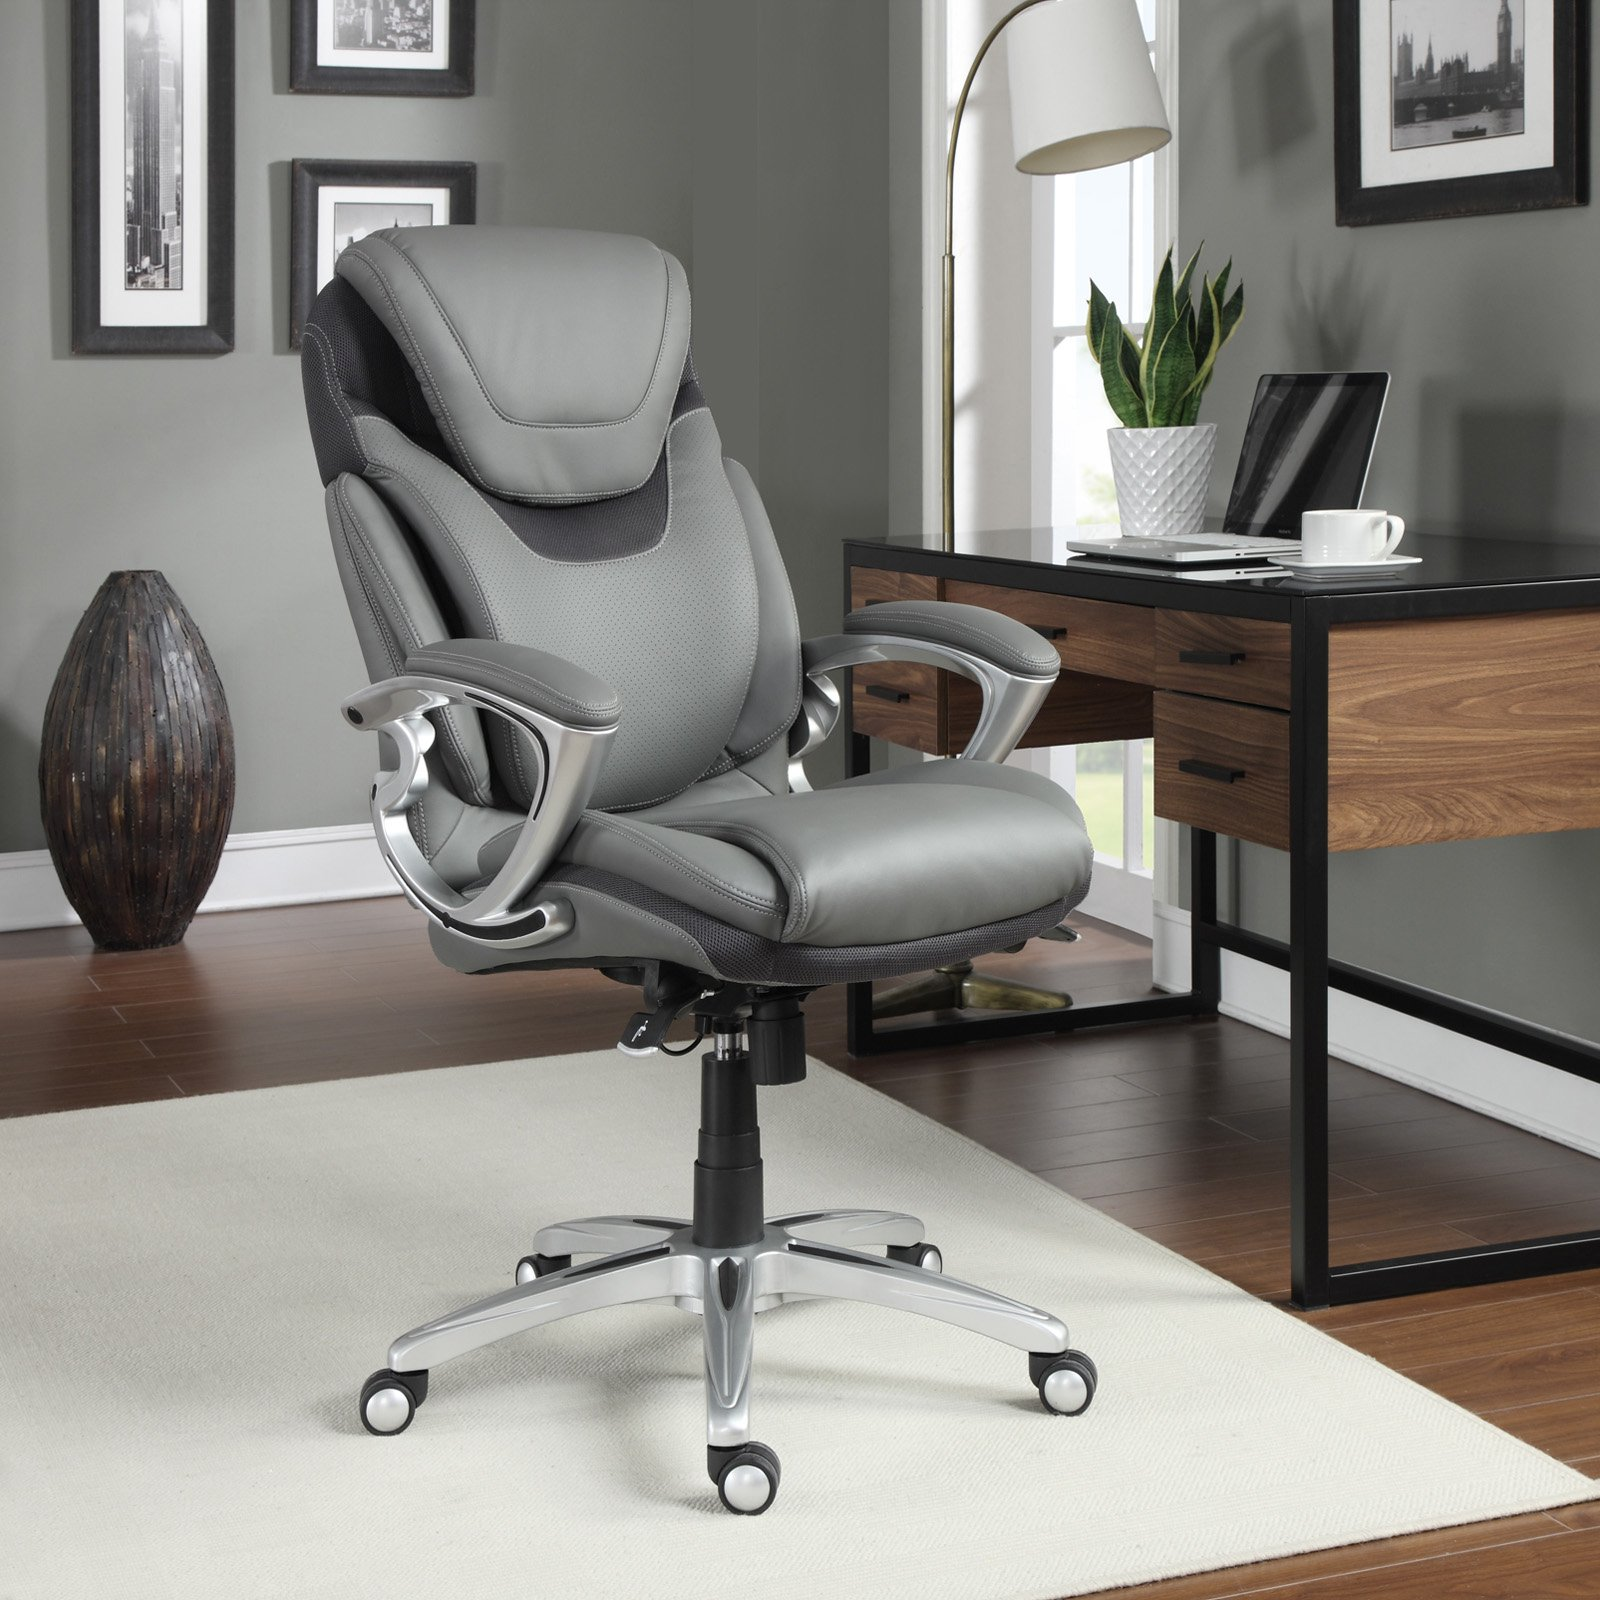 Serta Air Health Wellness Leather Executive Office Chair Light Grey